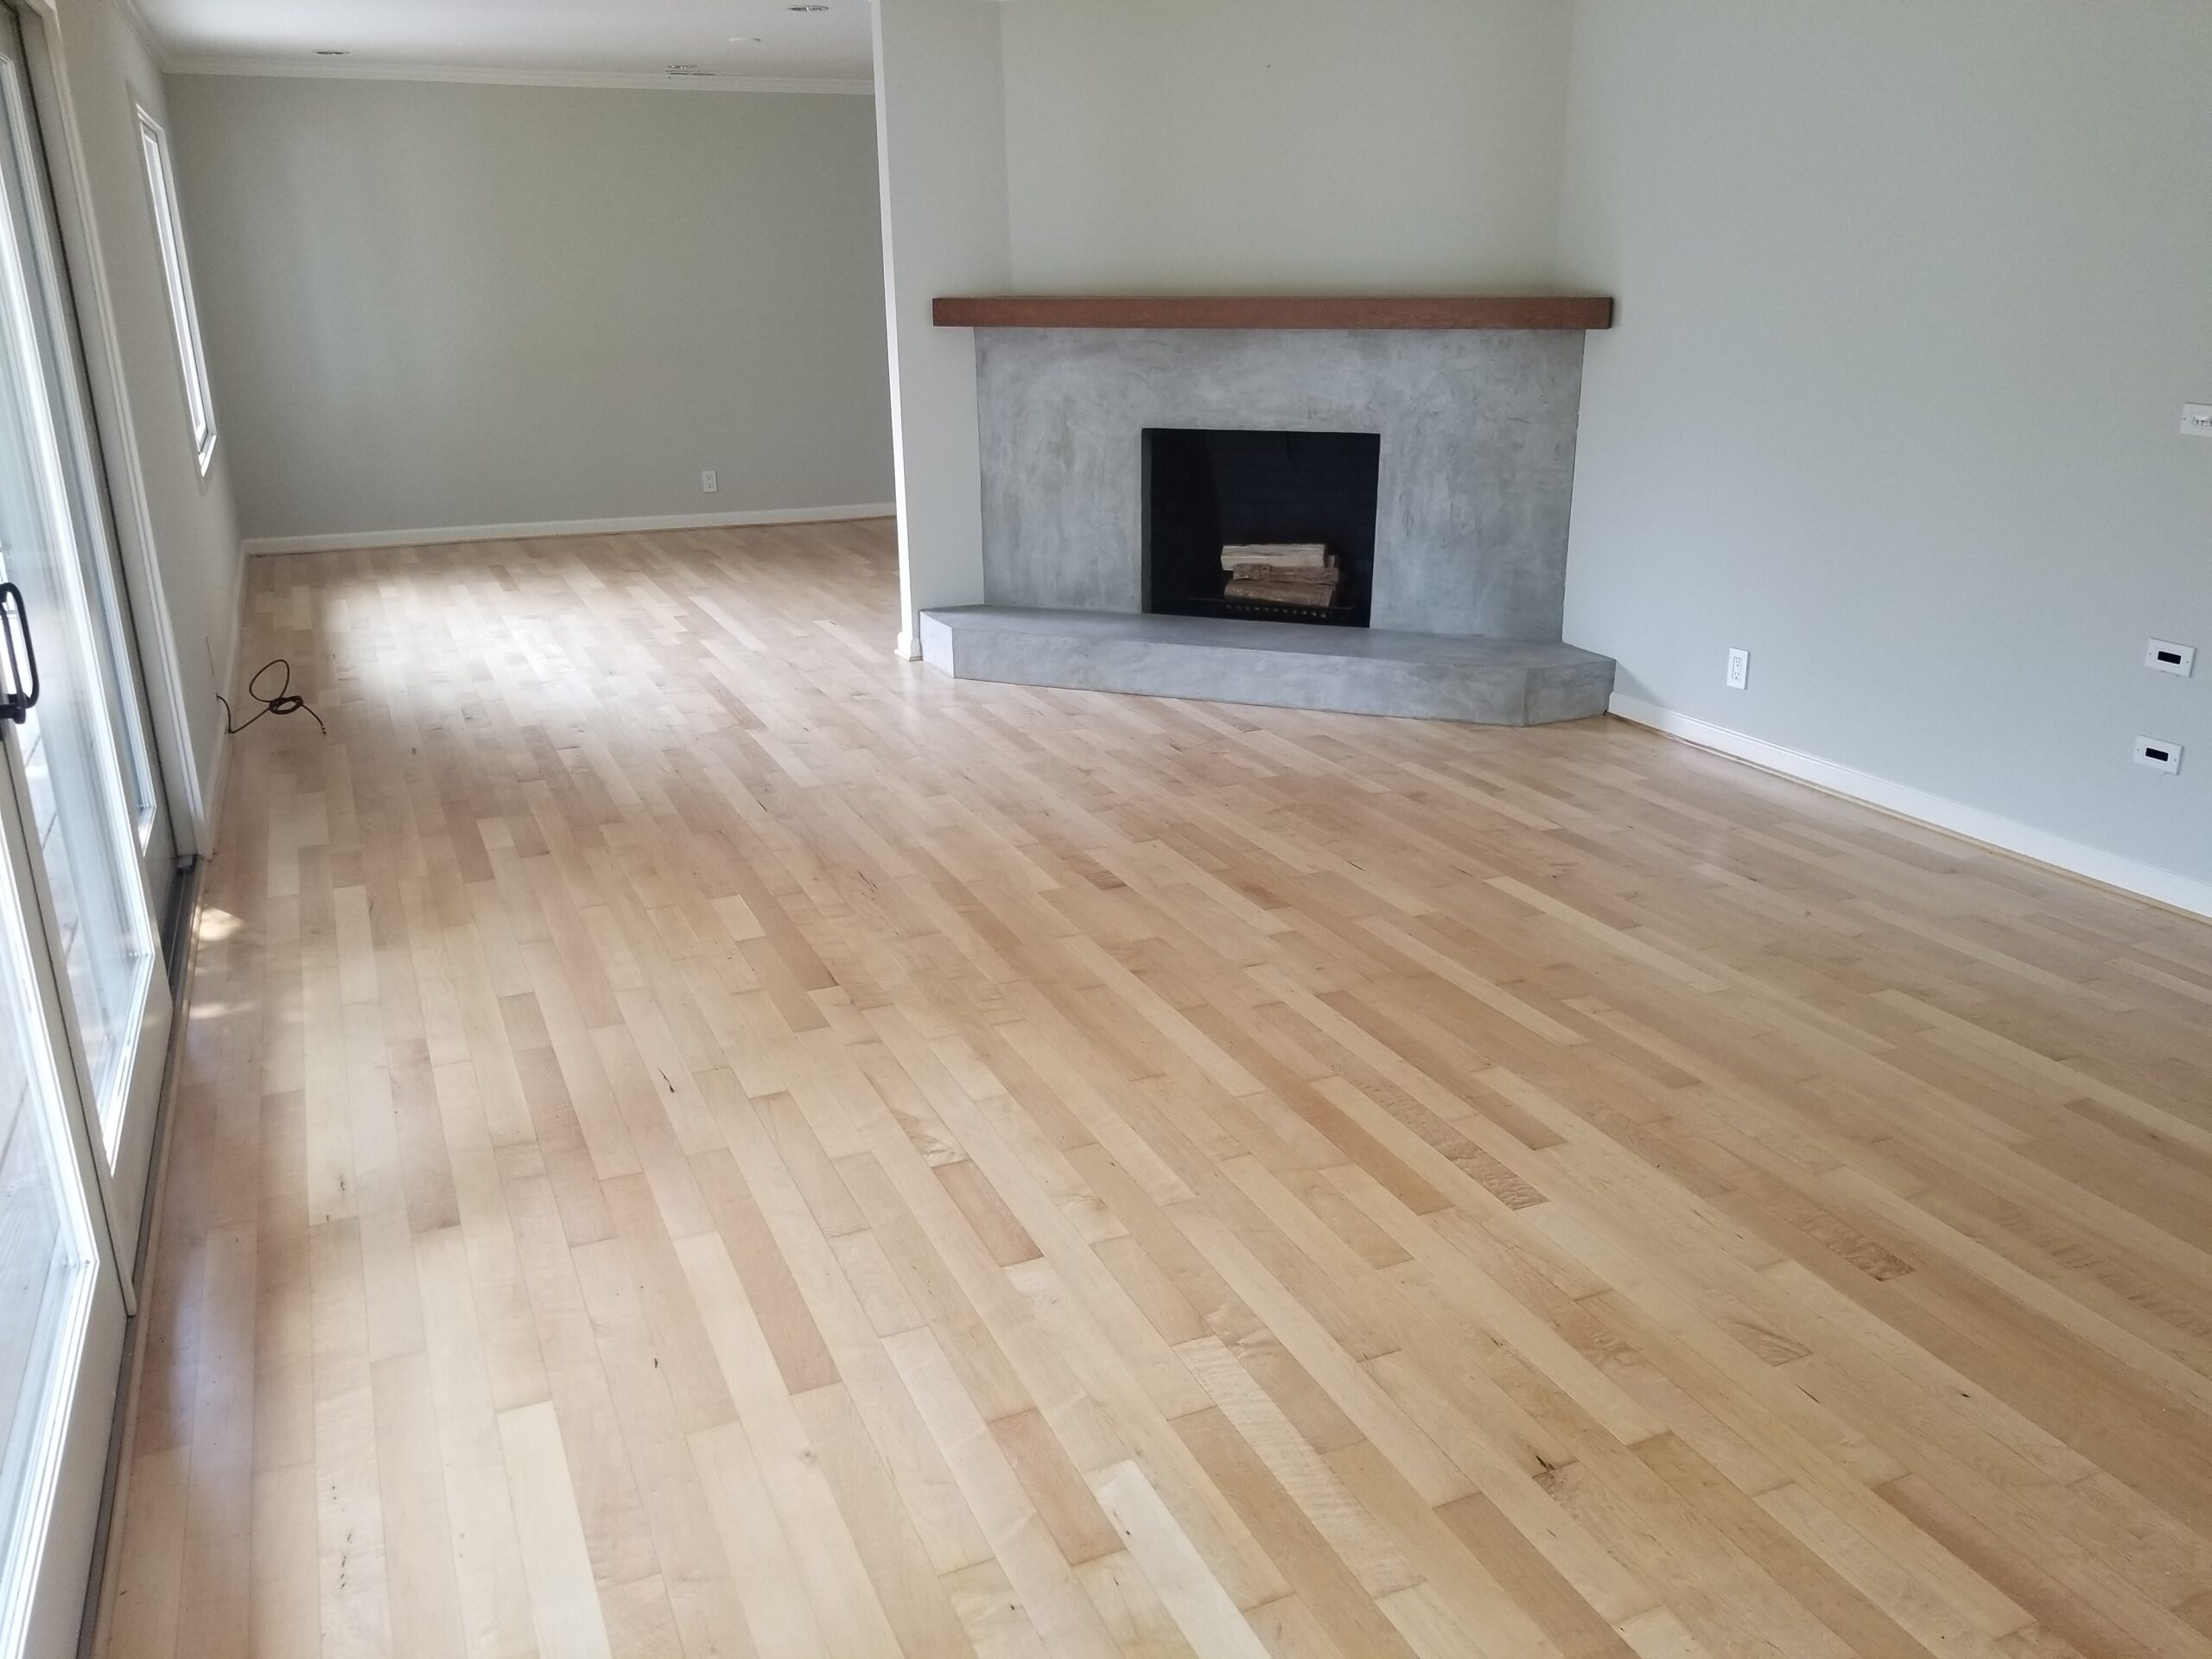 Los Altos home with living room/dining room 3/4 x 3 1/4 Maple floor refinished and coated with amber-water-based semi-gloss finish.